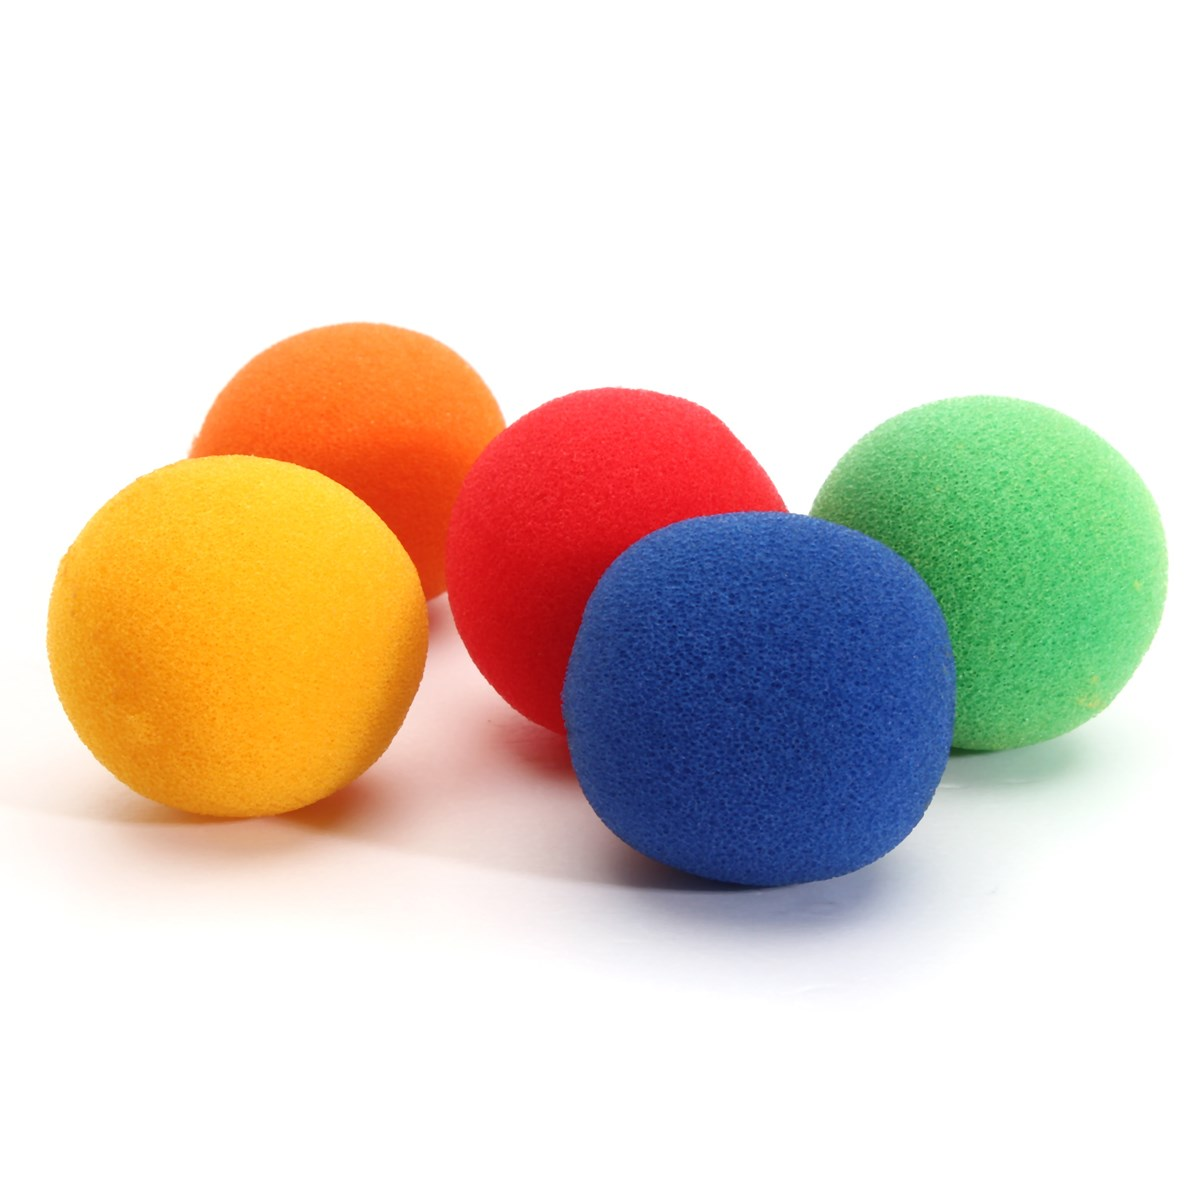 Excellent quality 3.5cm Medium size Colorful Close Up Magic Street Classical Comedy Trick Soft Sponge Balls